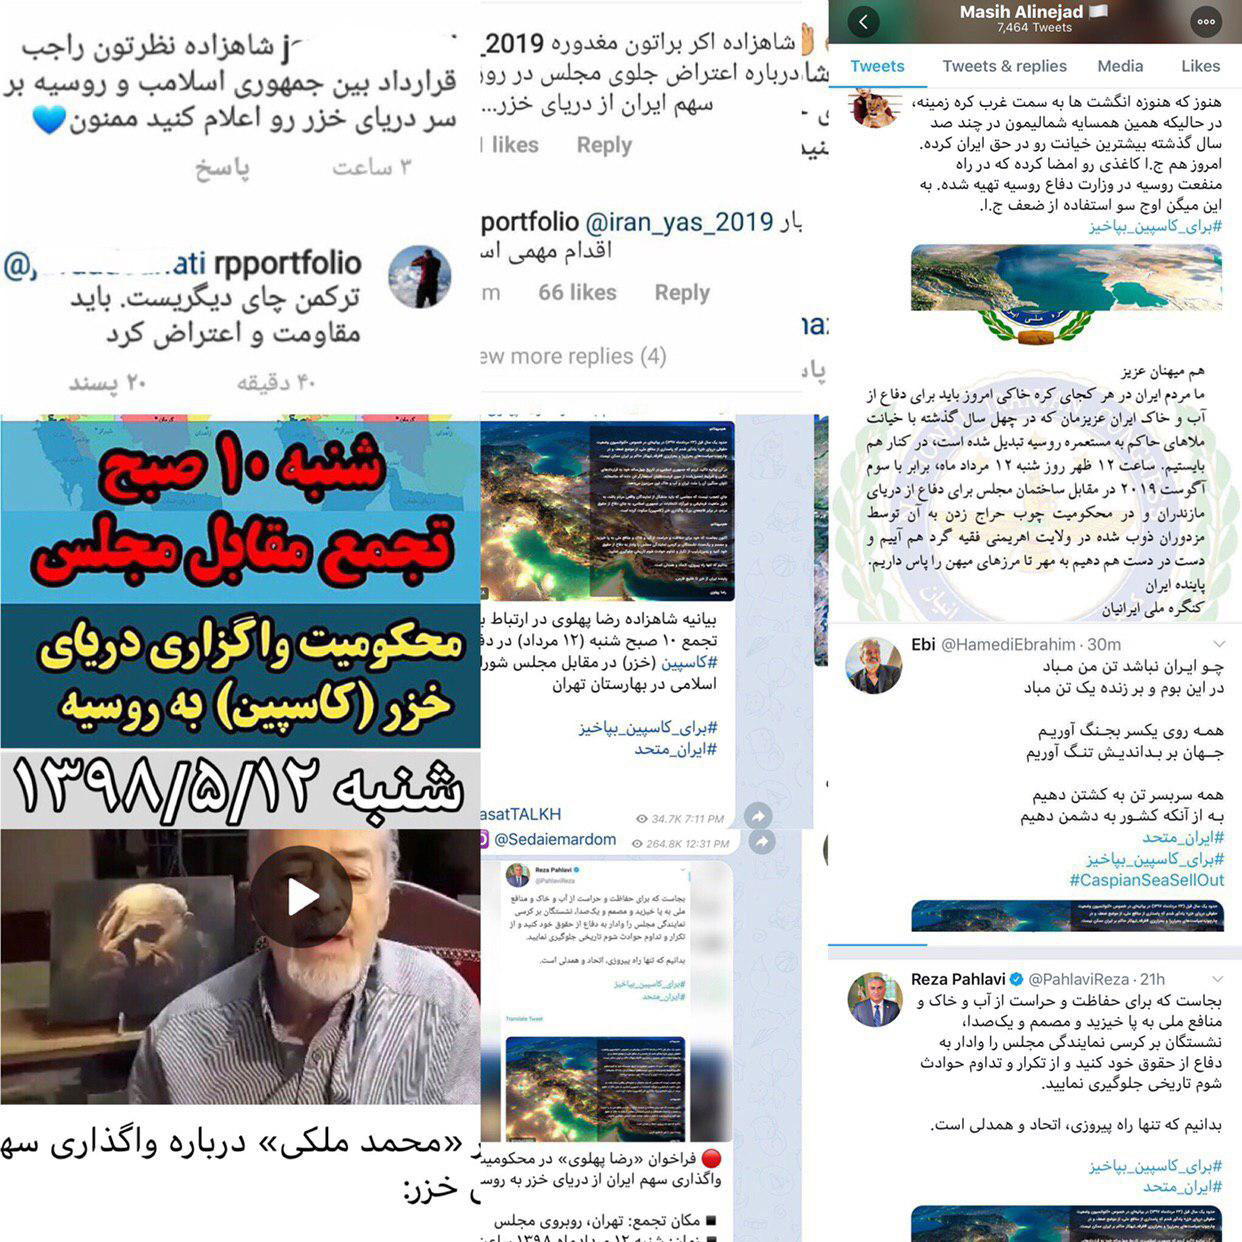 The call on Saturday, 3 August 2019, was a call by Reza Pahlavi and Farashgard